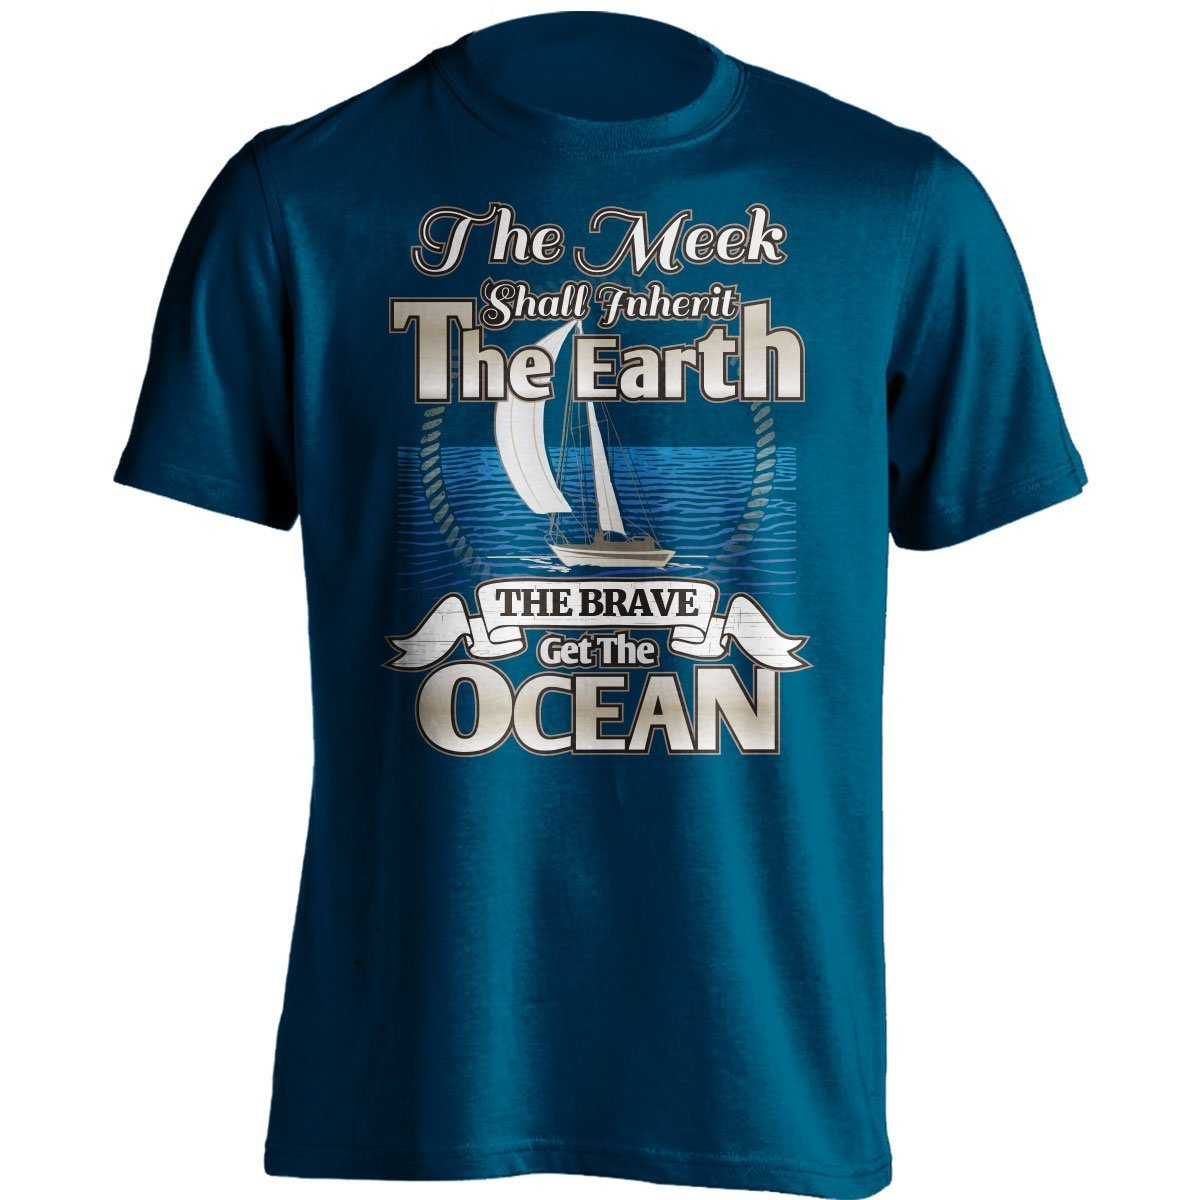 Fathers Day Gift And Christmas Gift... Birthday Gift Great Gift Idea To Dad Brother Sailor T-Shirt The Meek Shall Inherit The Earth The Brave Get The Ocean Sailing T-Shirt Uncle Or A Friend On Any Occasions